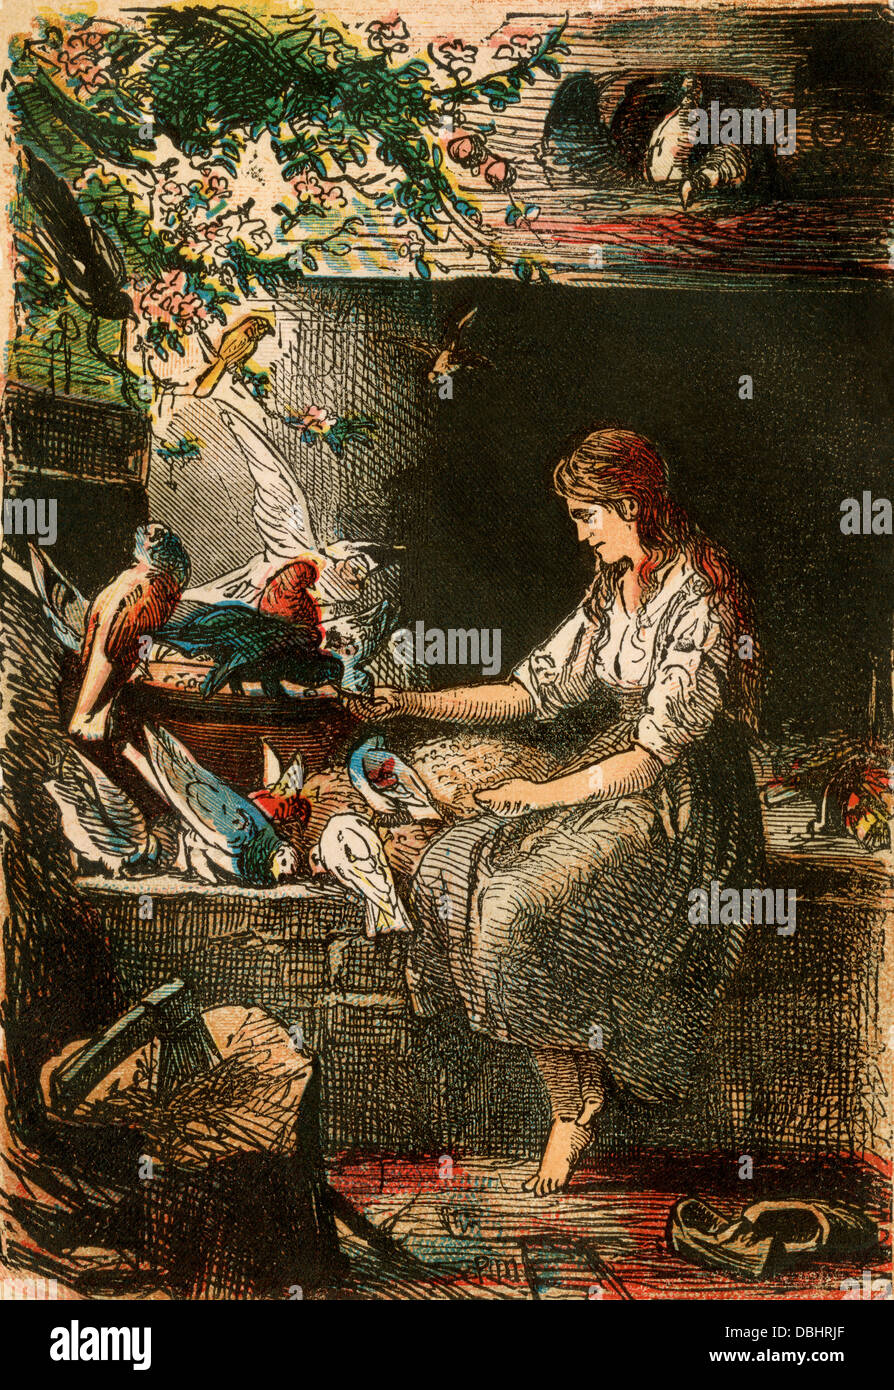 Cinderella, from a Berlin edition of Grimms' Fairy Tales, 1865. Color plate - Stock Image